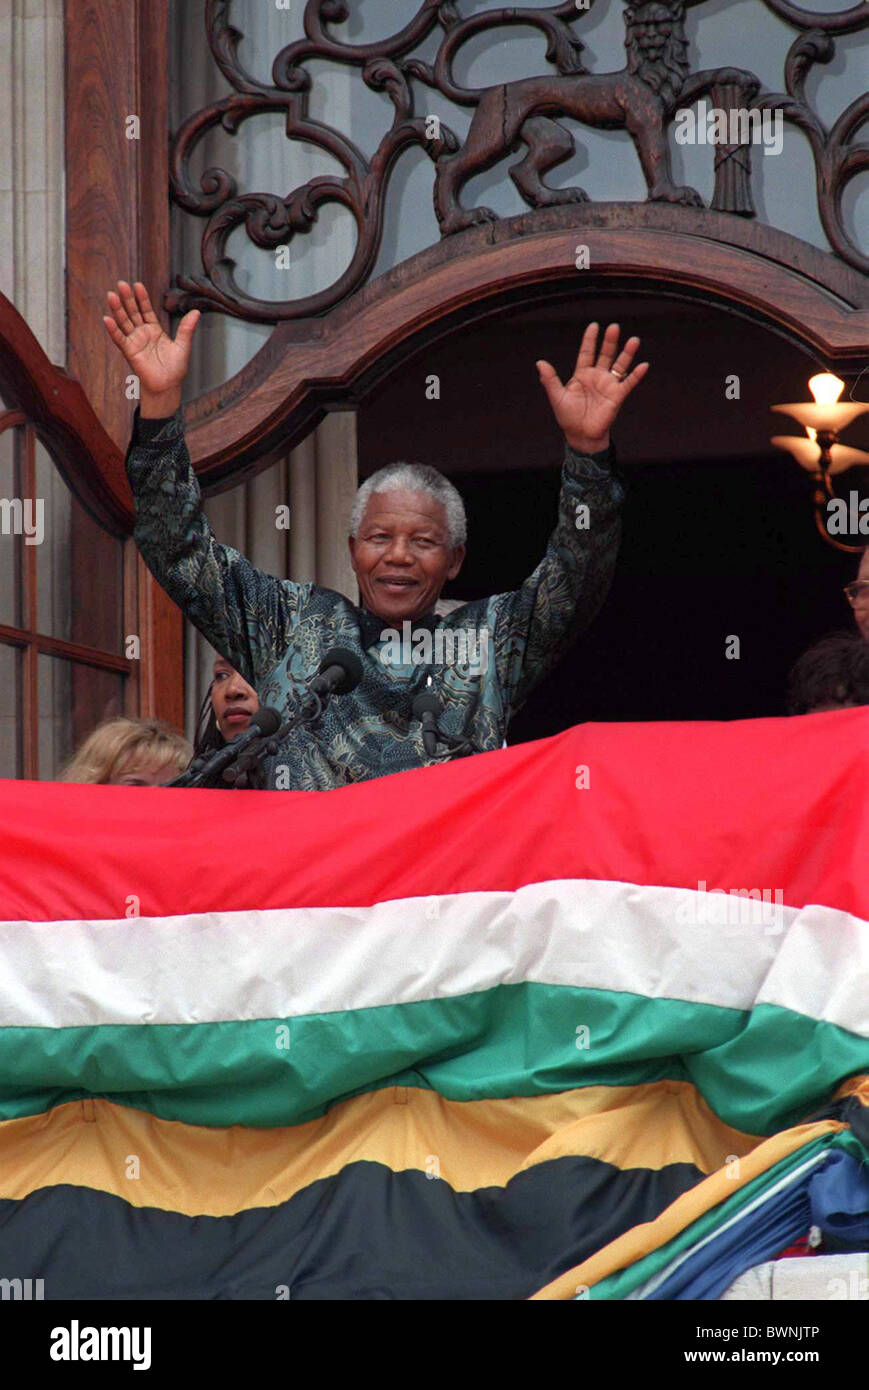 NELSON MANDELA IN BRITAIN WAVING TO THE CROWD FROM  SOUTH AFRICA HOUSE IN TRAFALGAR SQUARE, LONDON - Stock Image